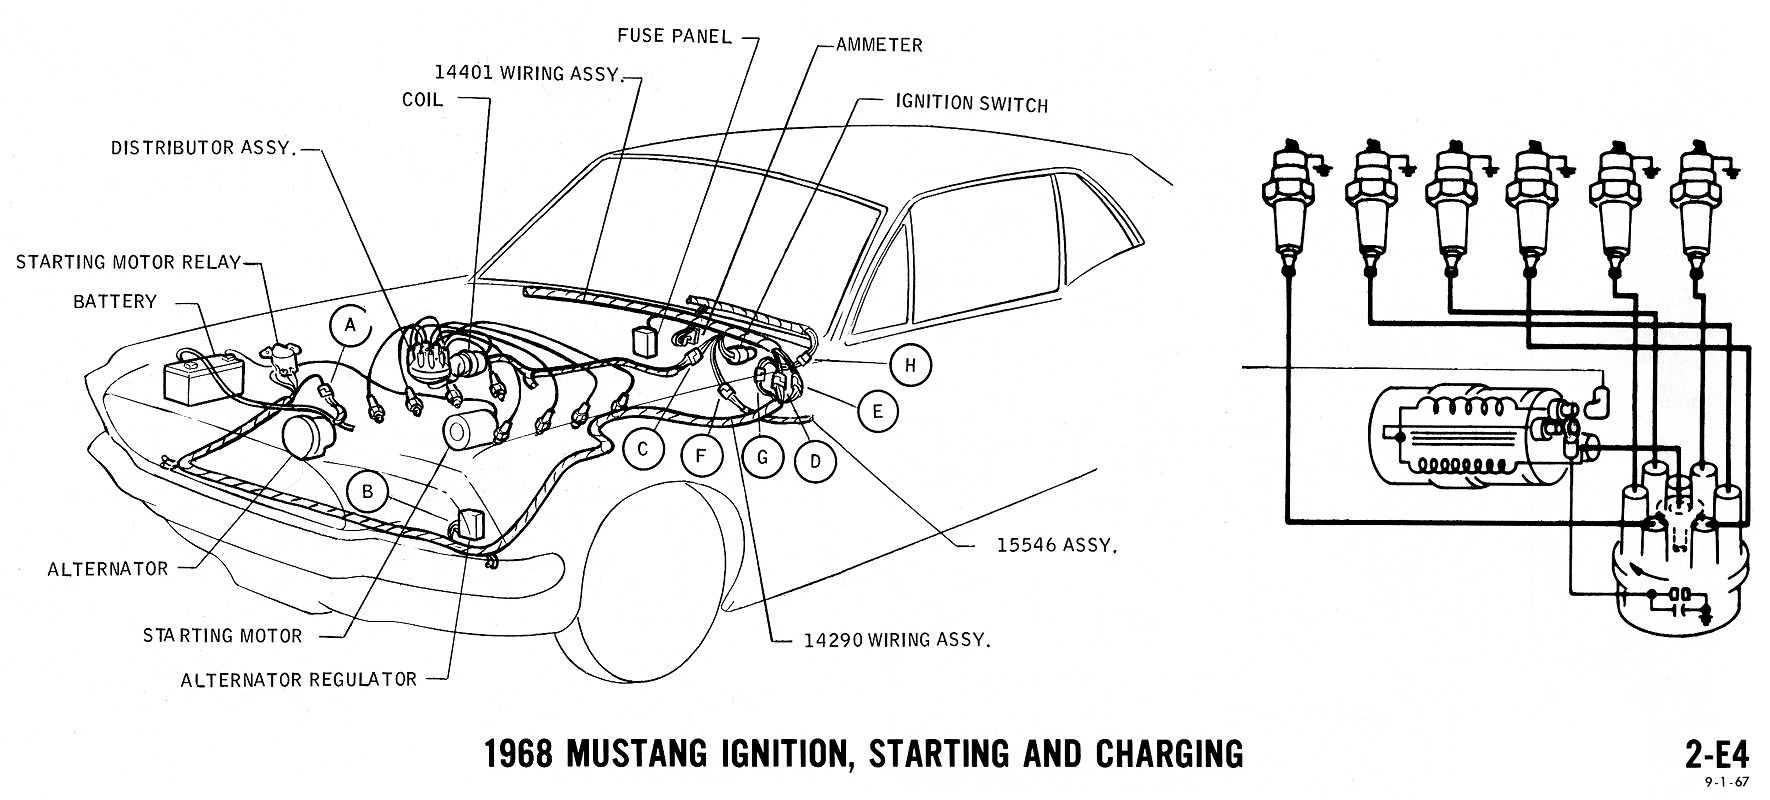 E4 1968 mustang wiring diagrams evolving software 1967 Mustang Wiring Schematic at crackthecode.co